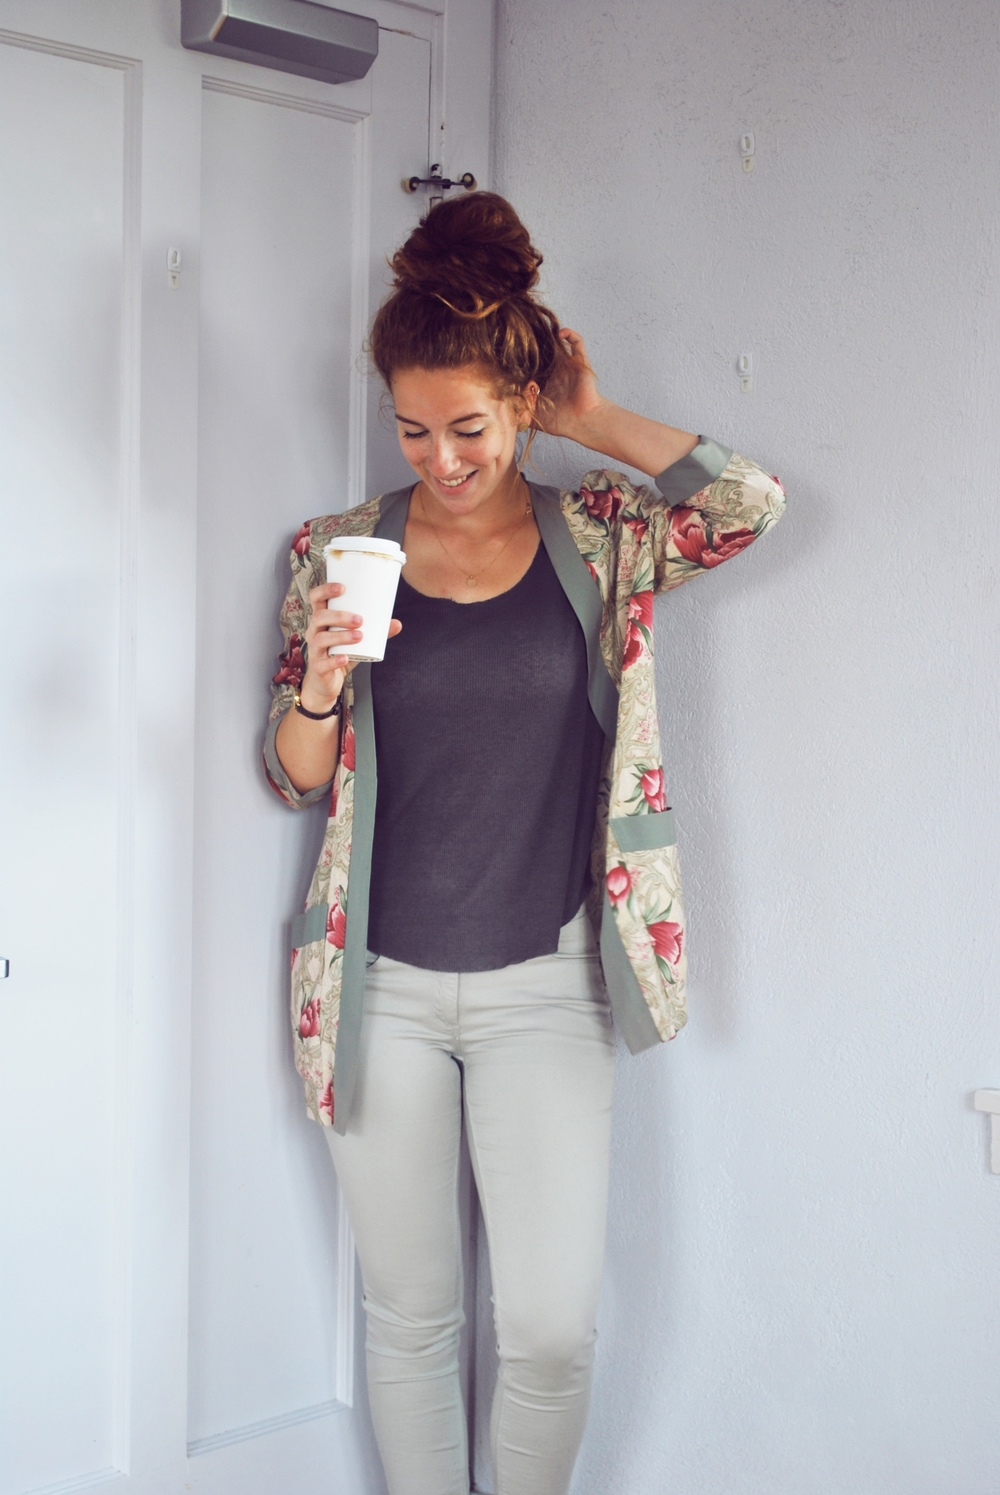 Cute creative outfit: Kimono style. Outfit of the day from Hoot Design Co! #OOTD